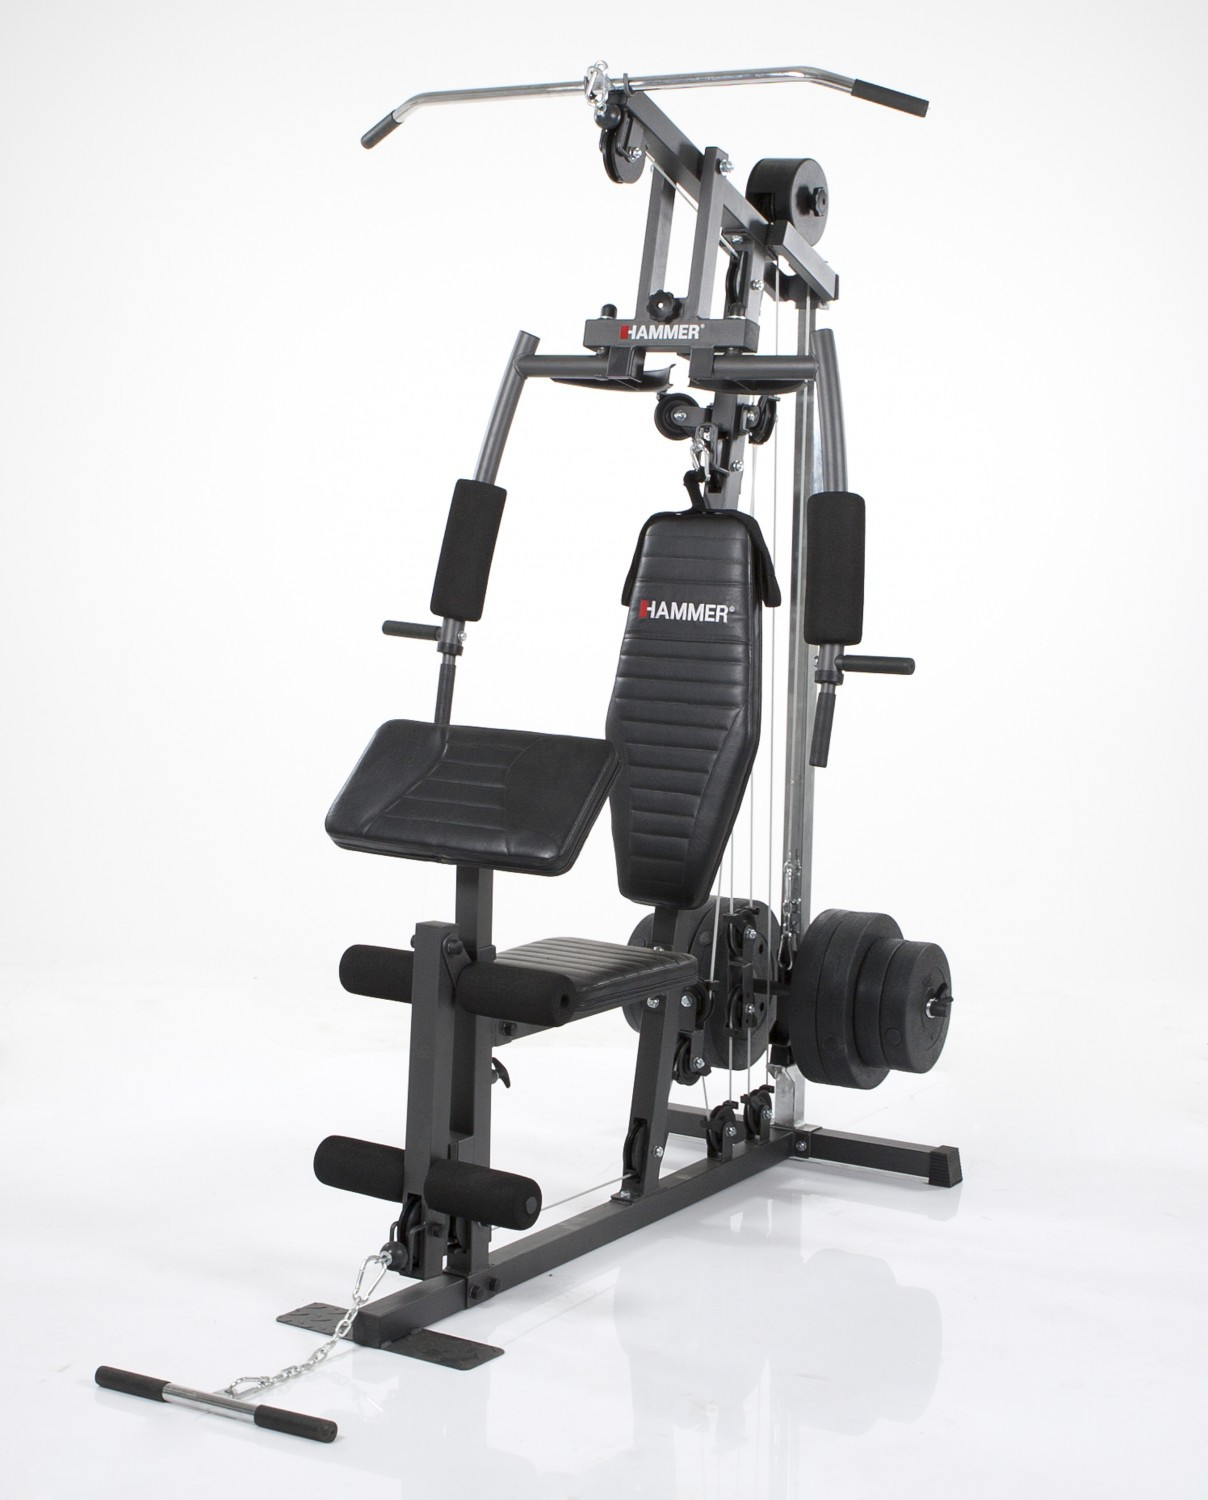 hammer kraftstation california xp fitness station mullti gym multistation 9067 ebay. Black Bedroom Furniture Sets. Home Design Ideas